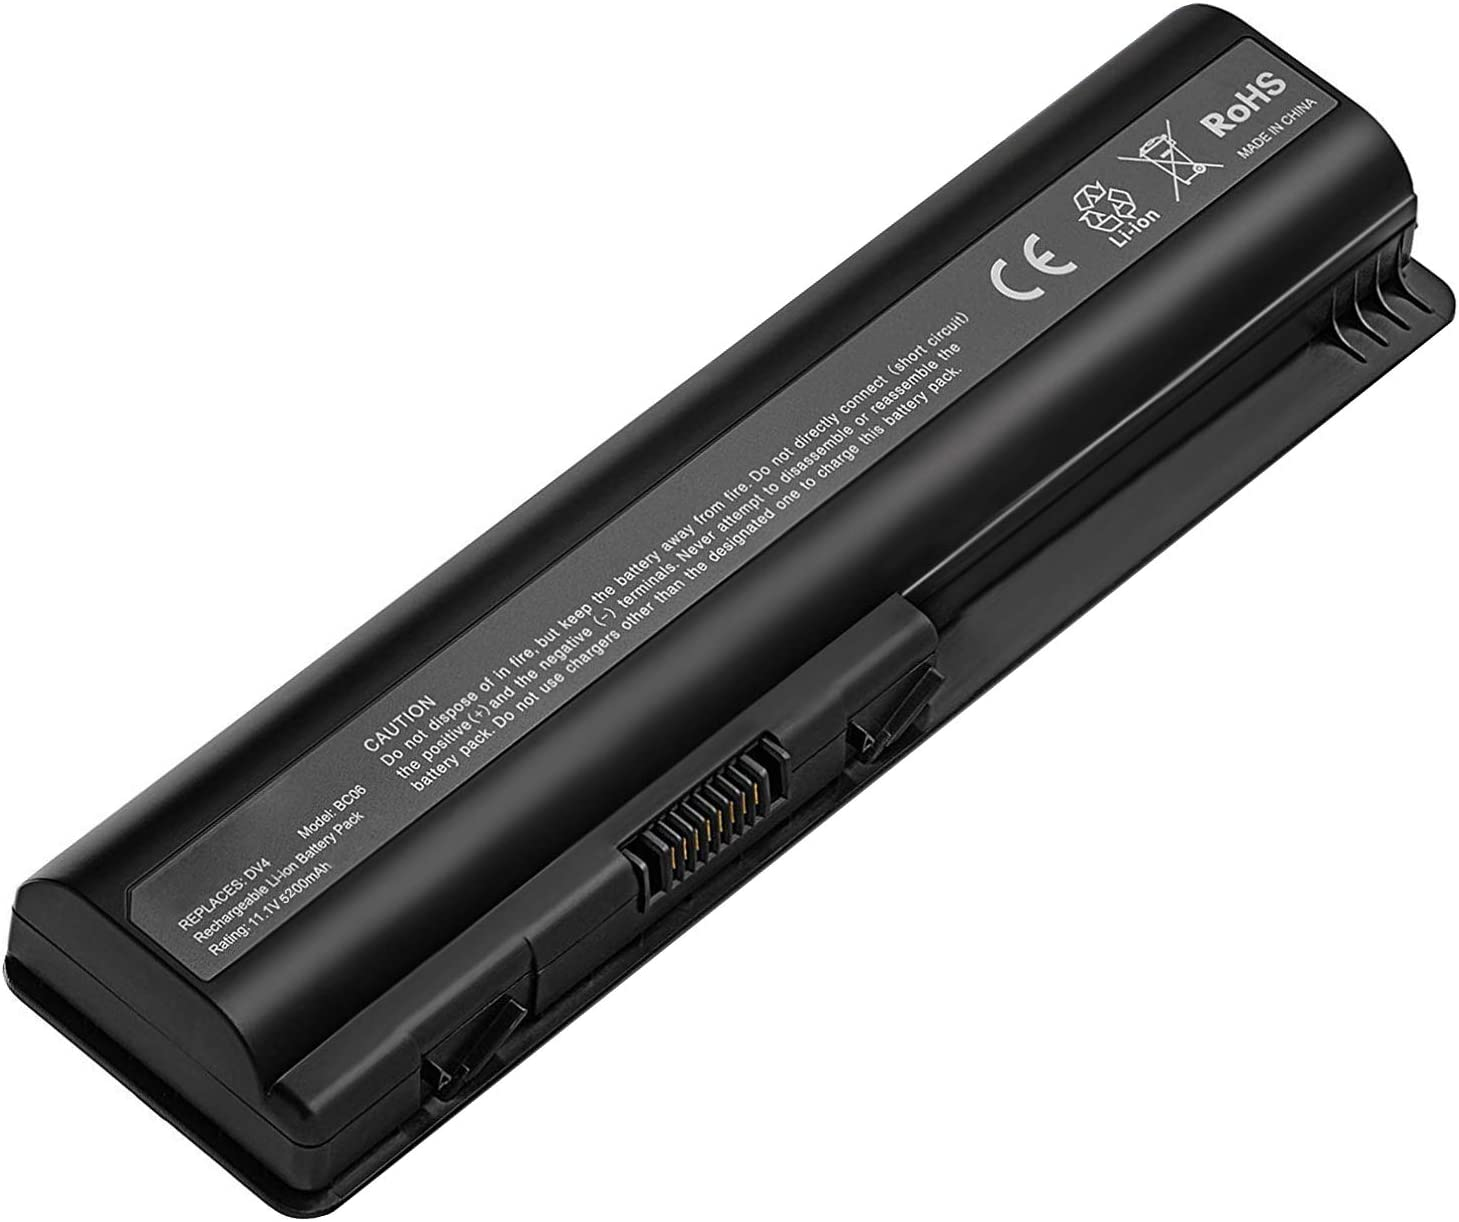 Spare 484170-001 Laptop Battery for HP Spare 497694-001 498482-001 484170-002 485041-001